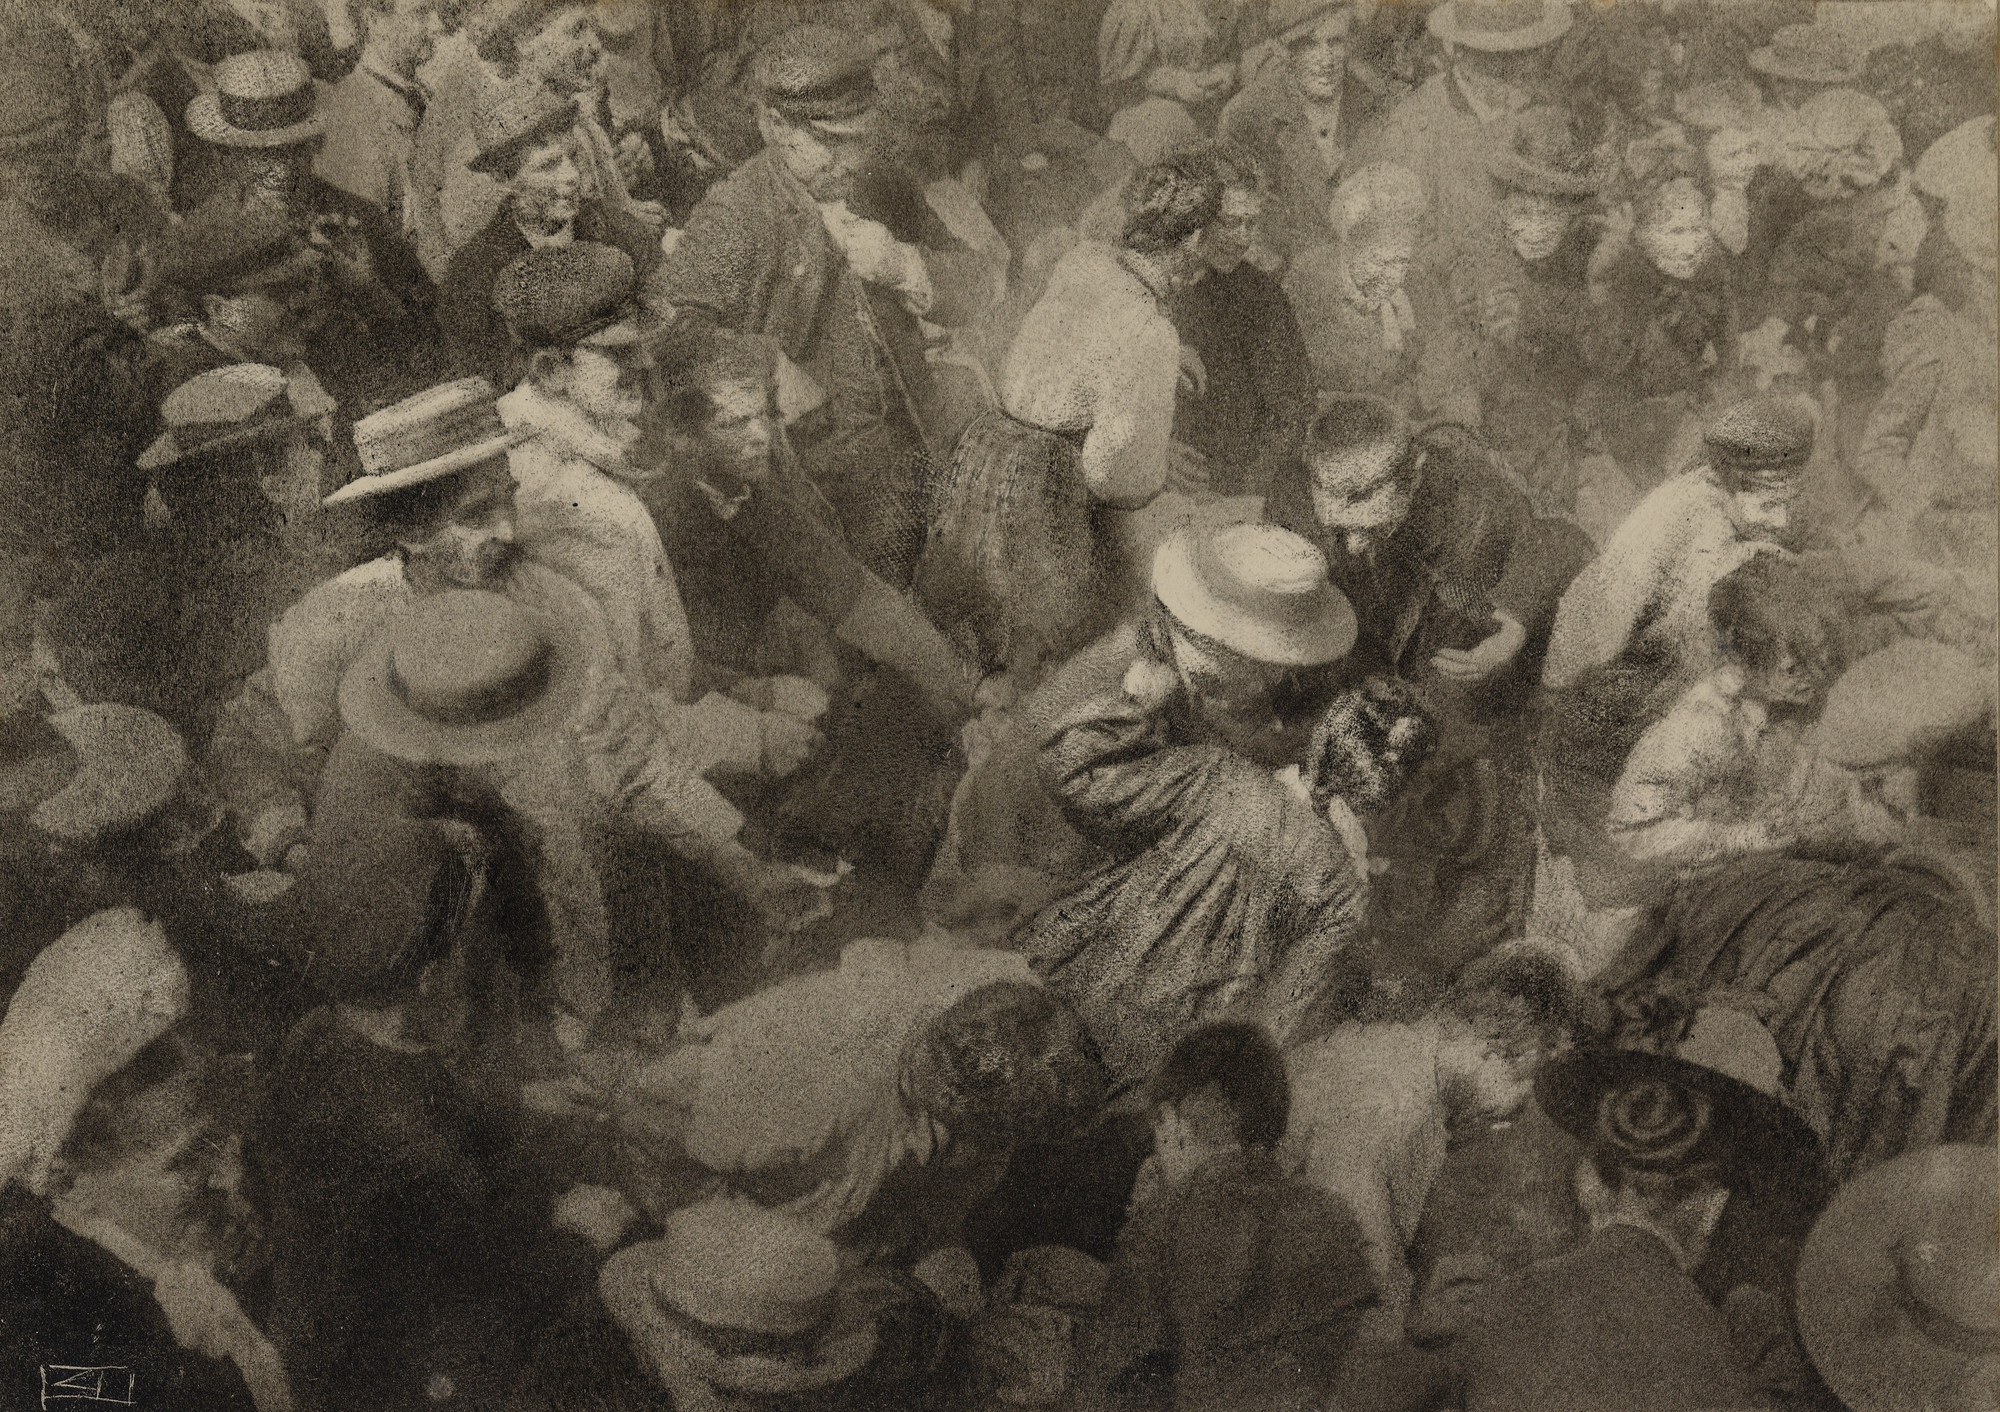 Robert Demachy. The Crowd. 1910